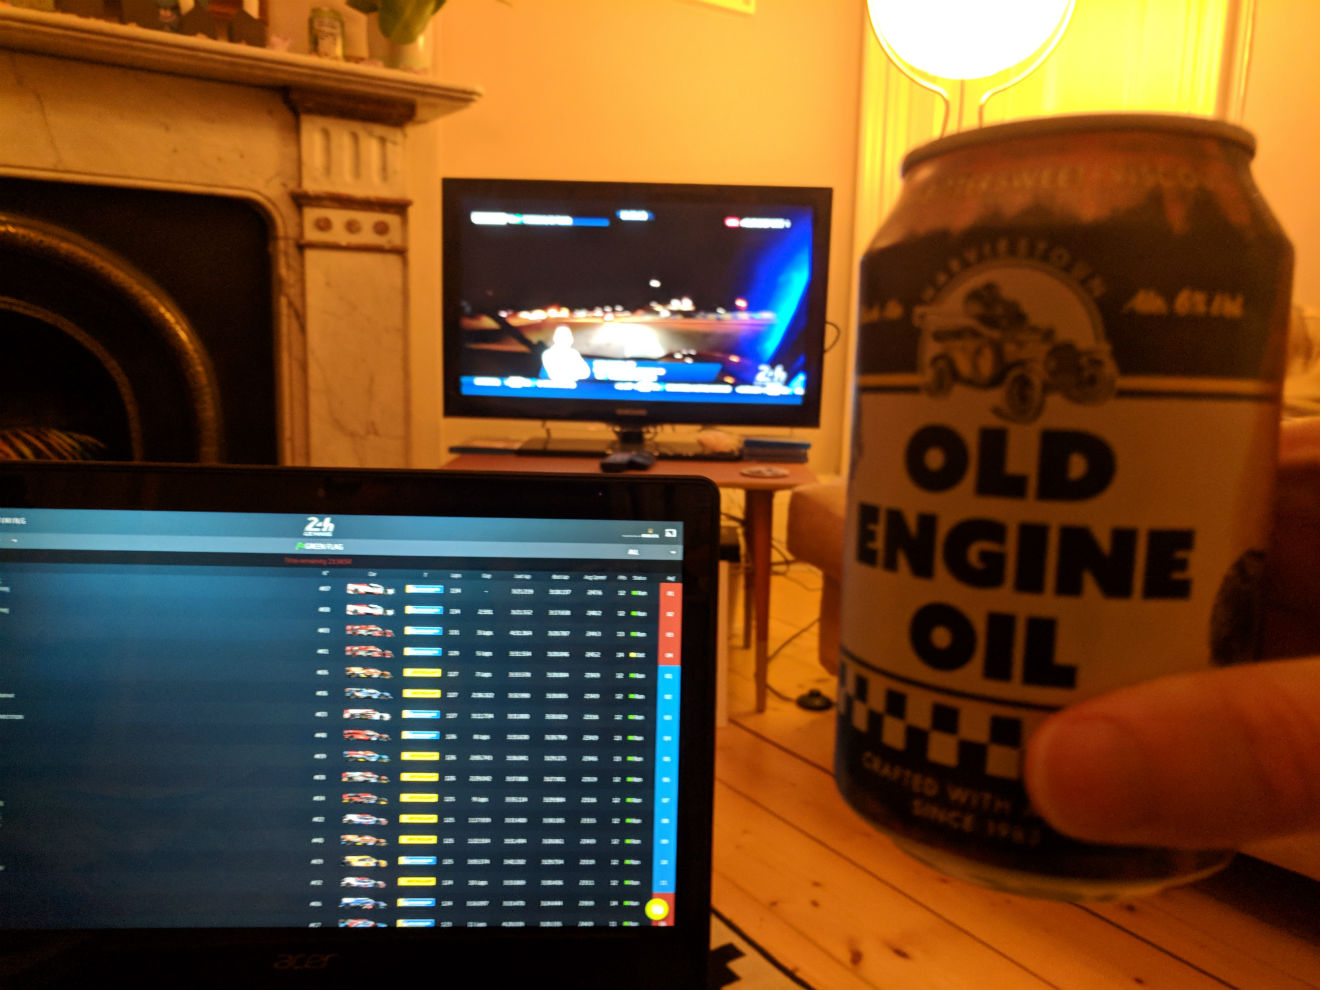 Watching 24 Hours of Le Mans with Old Engine Oil beer